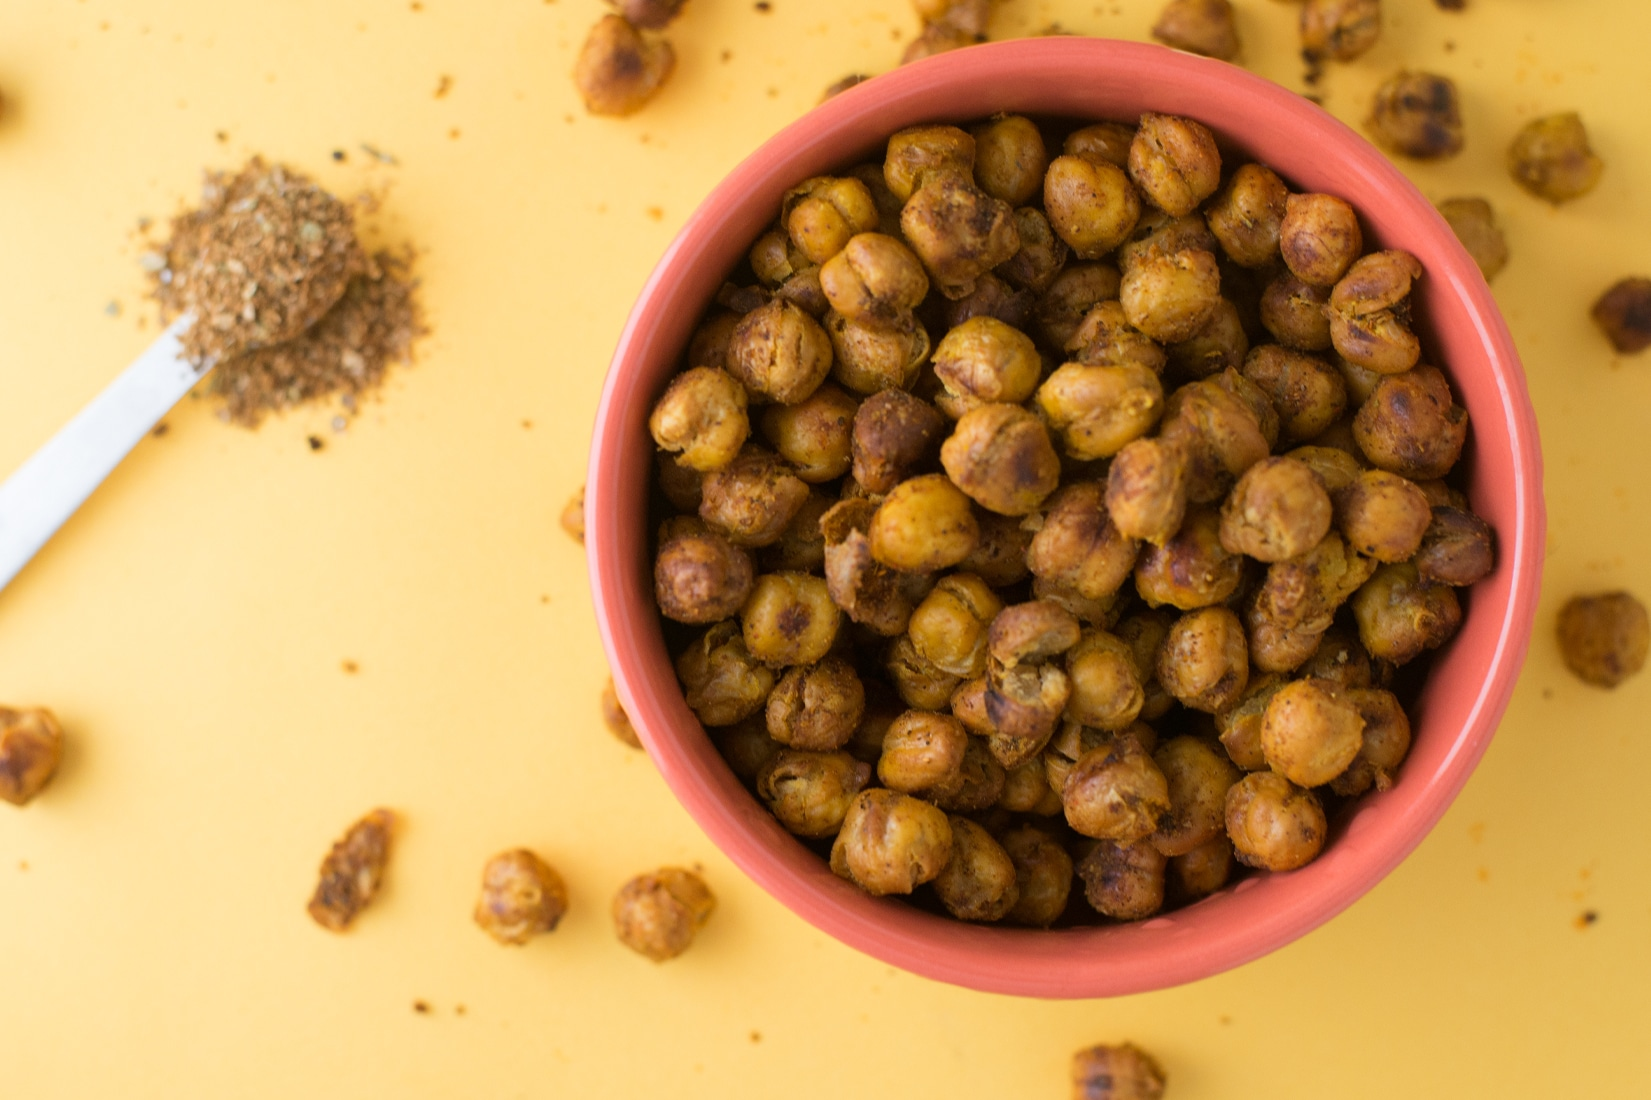 Bowl of roasted chickpeas on yellow background